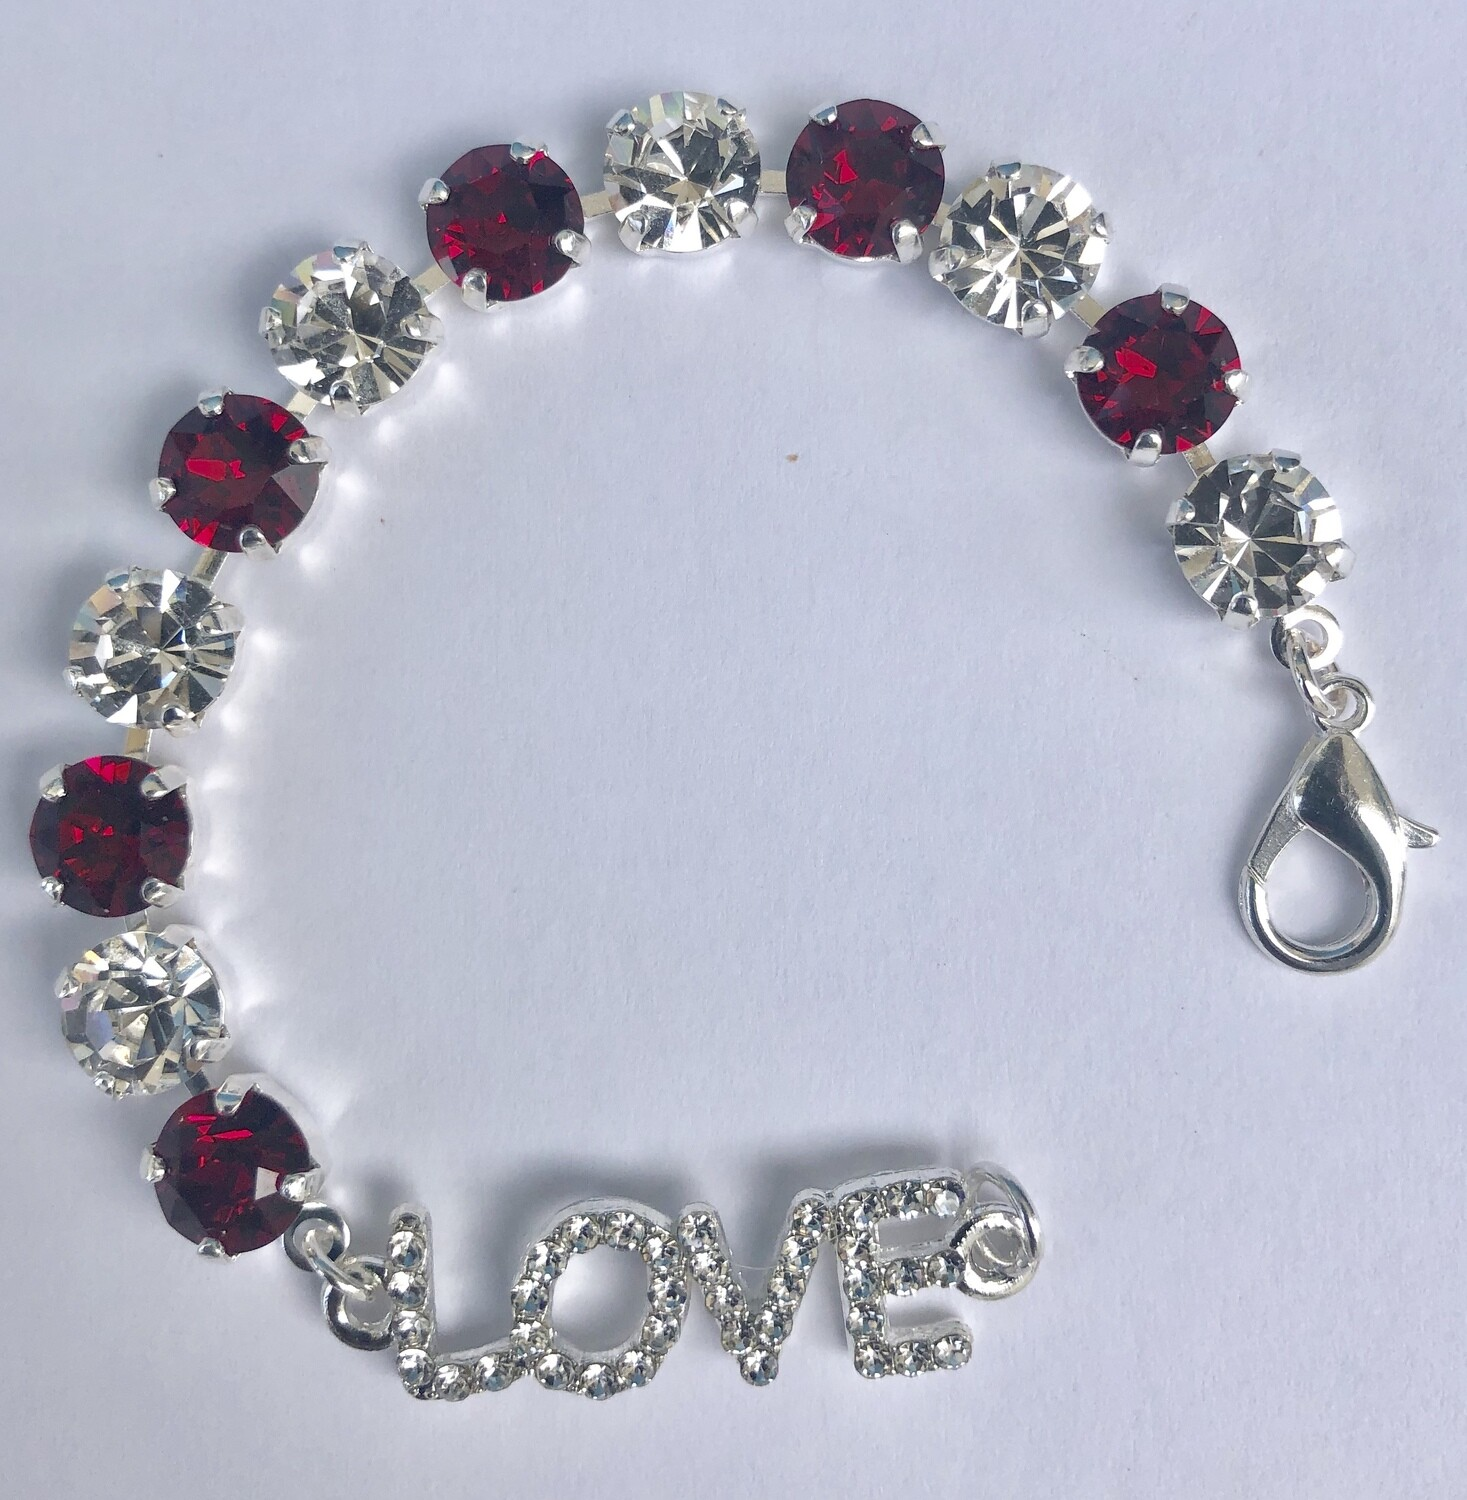 """""""Everlasting"""" Love Bracelet consists of ruby red and clear crystals with a silver finish.  Handmade by Raine"""